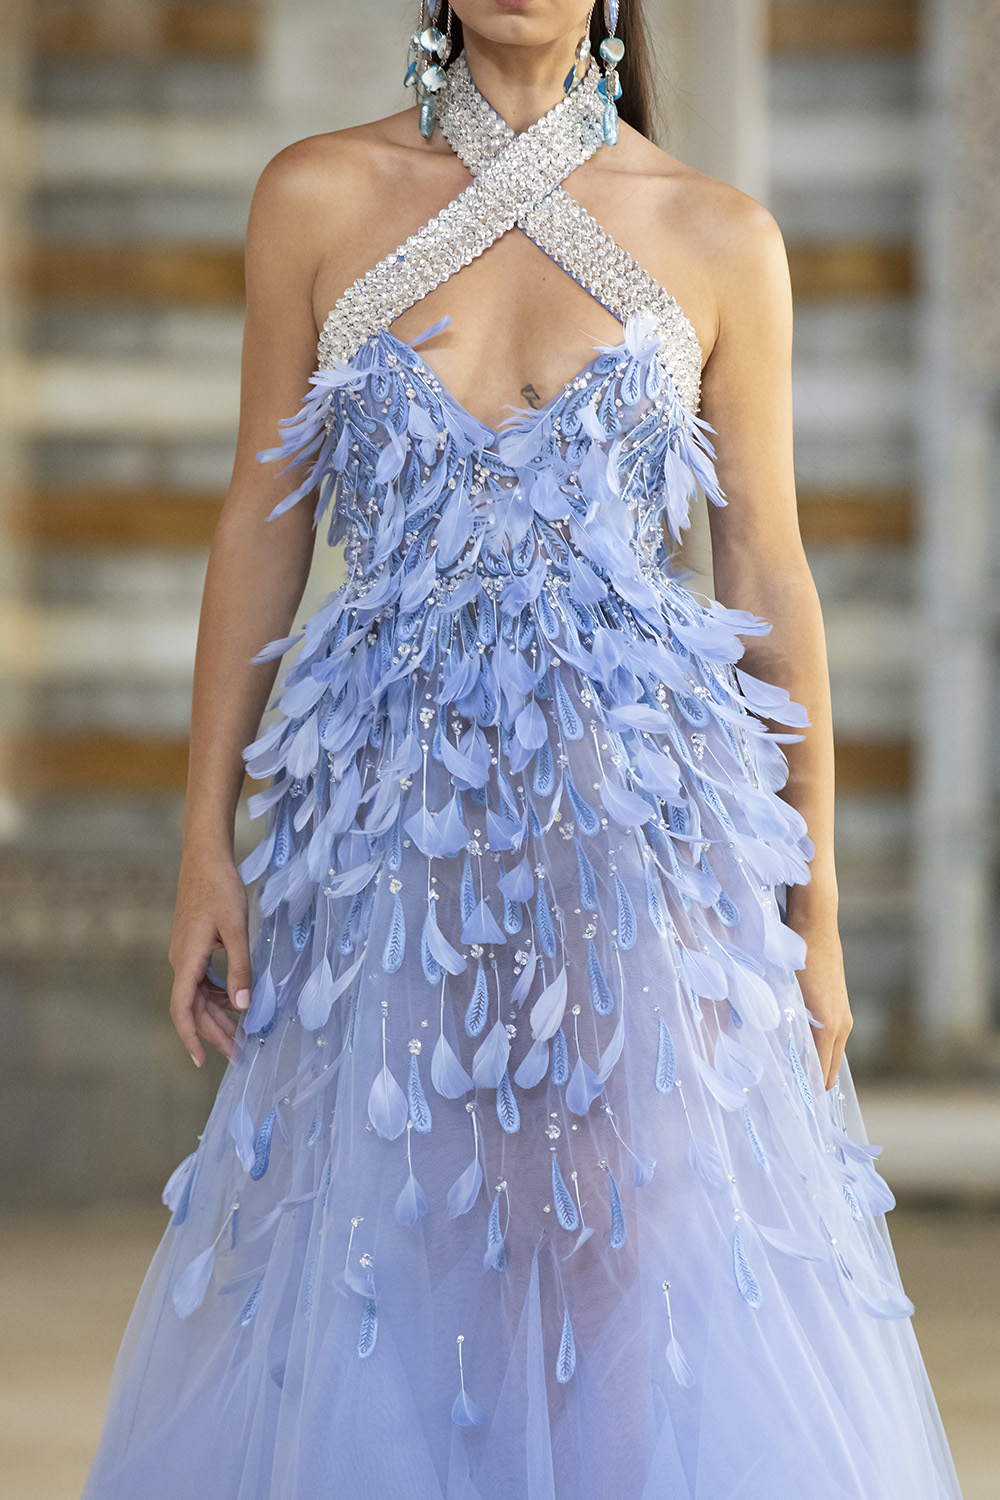 Georges Hobeika Spring 2022 Ready-to-Wear Collection I DreaminLace.com #fashionstyle